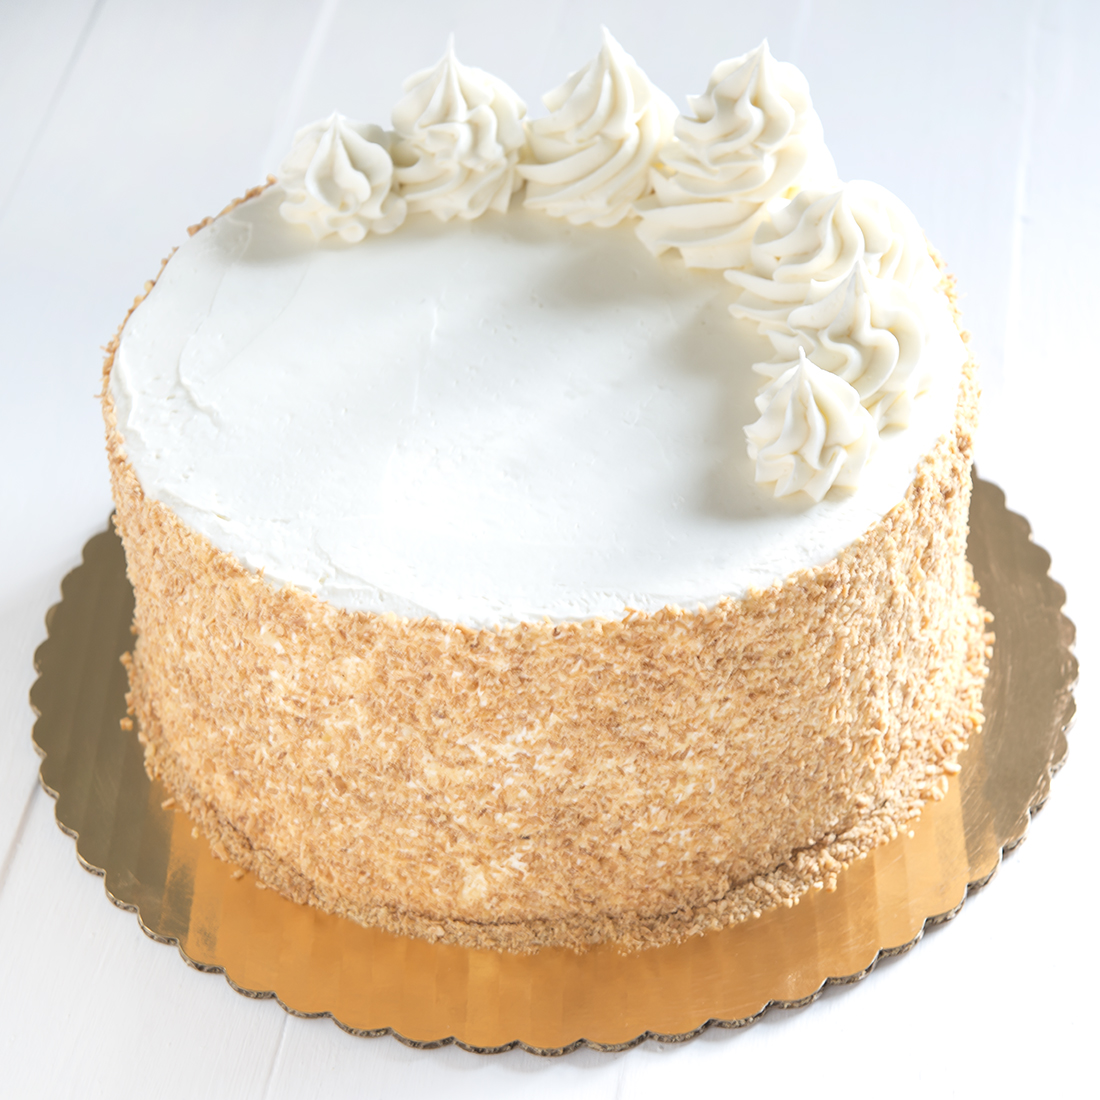 Toasted Almond - Almond cake filled and frosted with almond buttercream, buttercrunch6